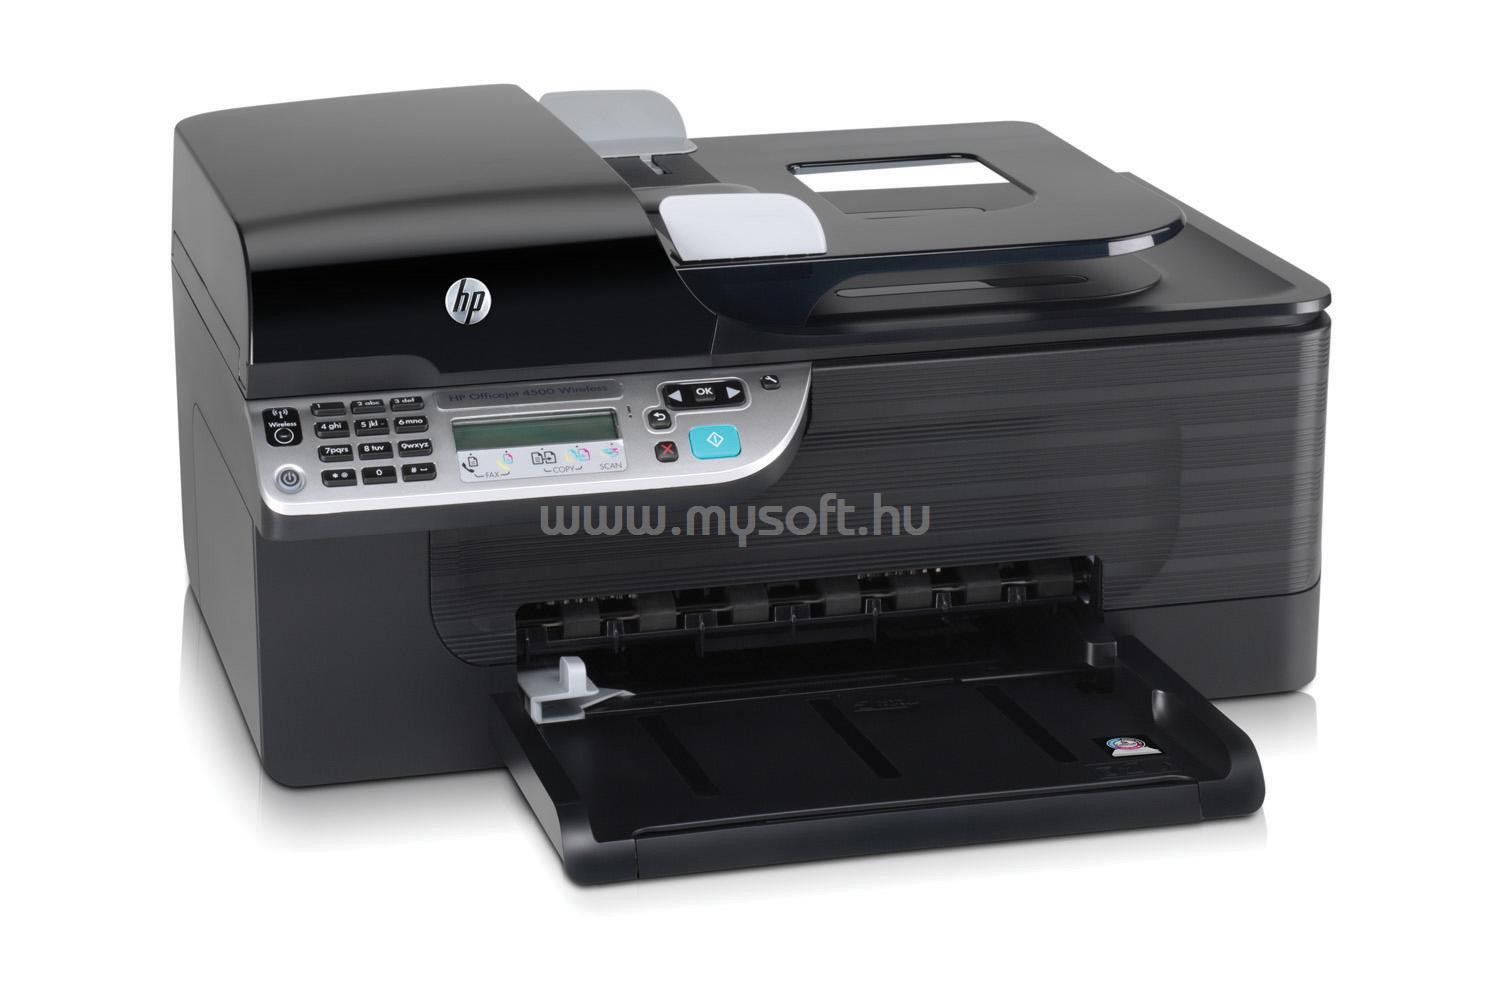 download printer driver hp officejet 4500 wireless